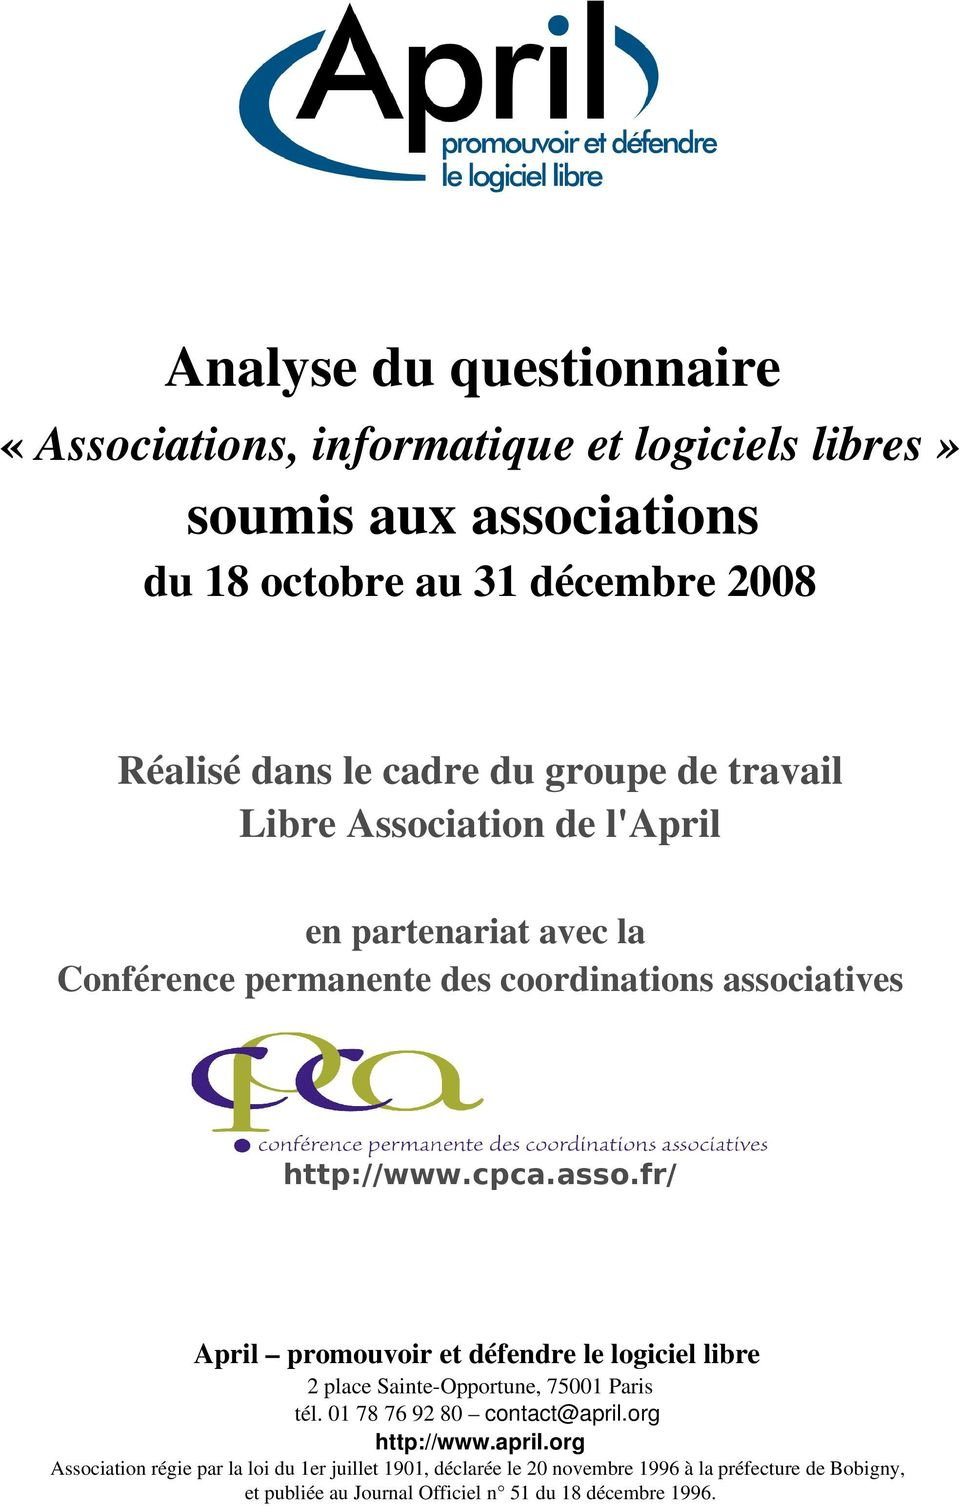 iatives http://www.cpca.asso.fr/ April promouvoir et défendre le logiciel libre 2 place Sainte Opportune, 75001 Paris tél. 01 78 76 92 80 contact@april.